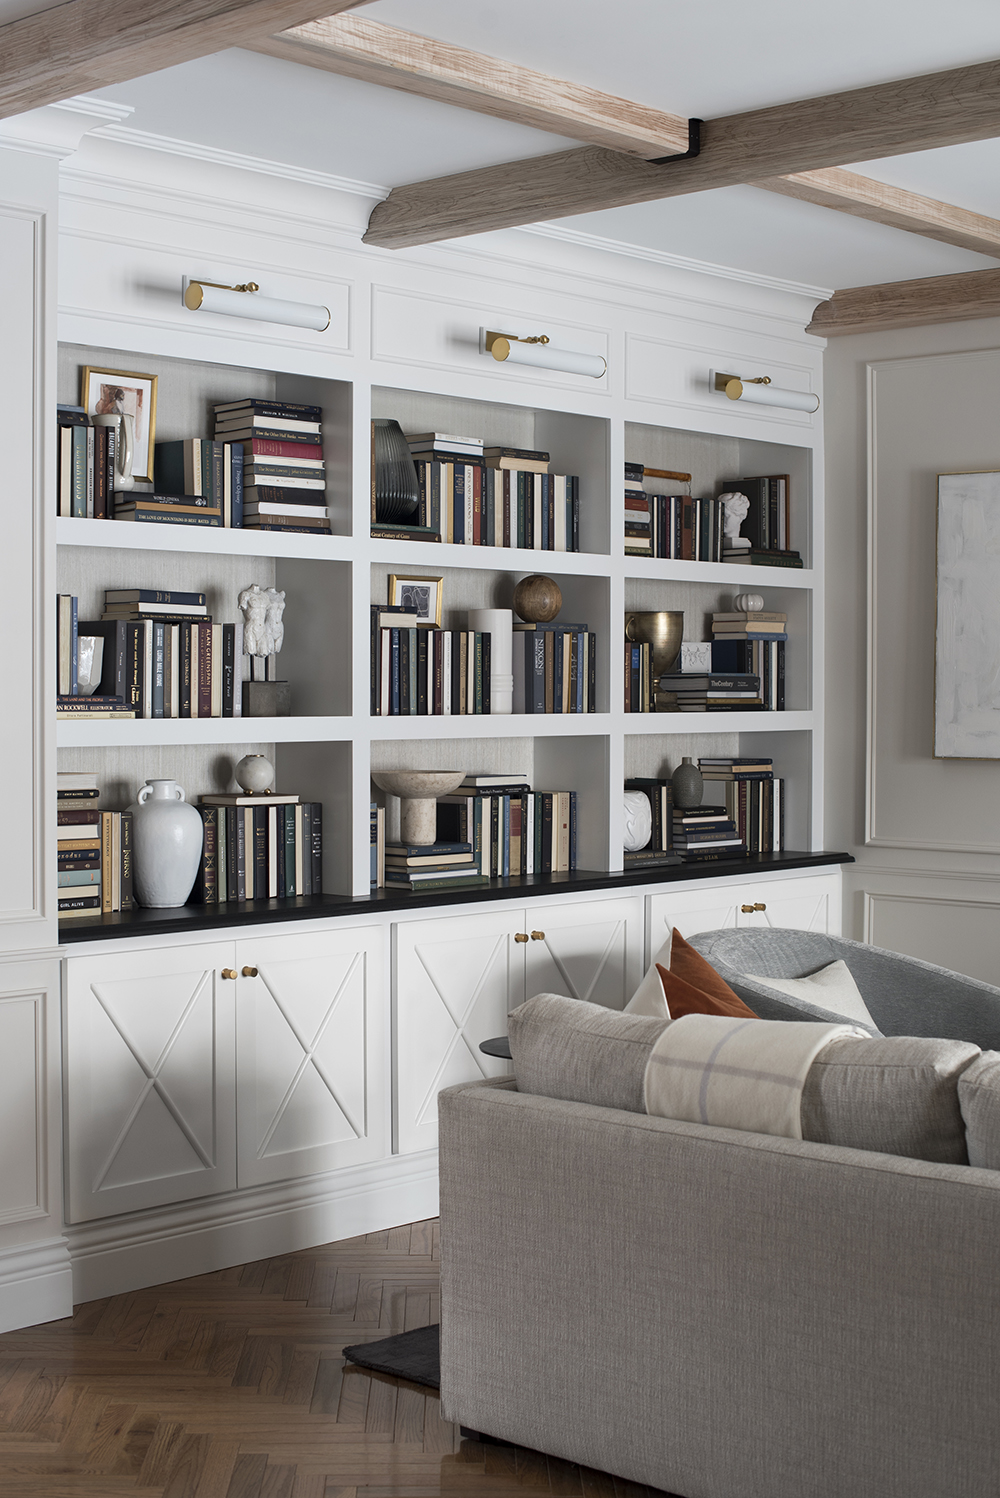 Design Discussion : Shelf Styling with Books - roomfortuesday.com